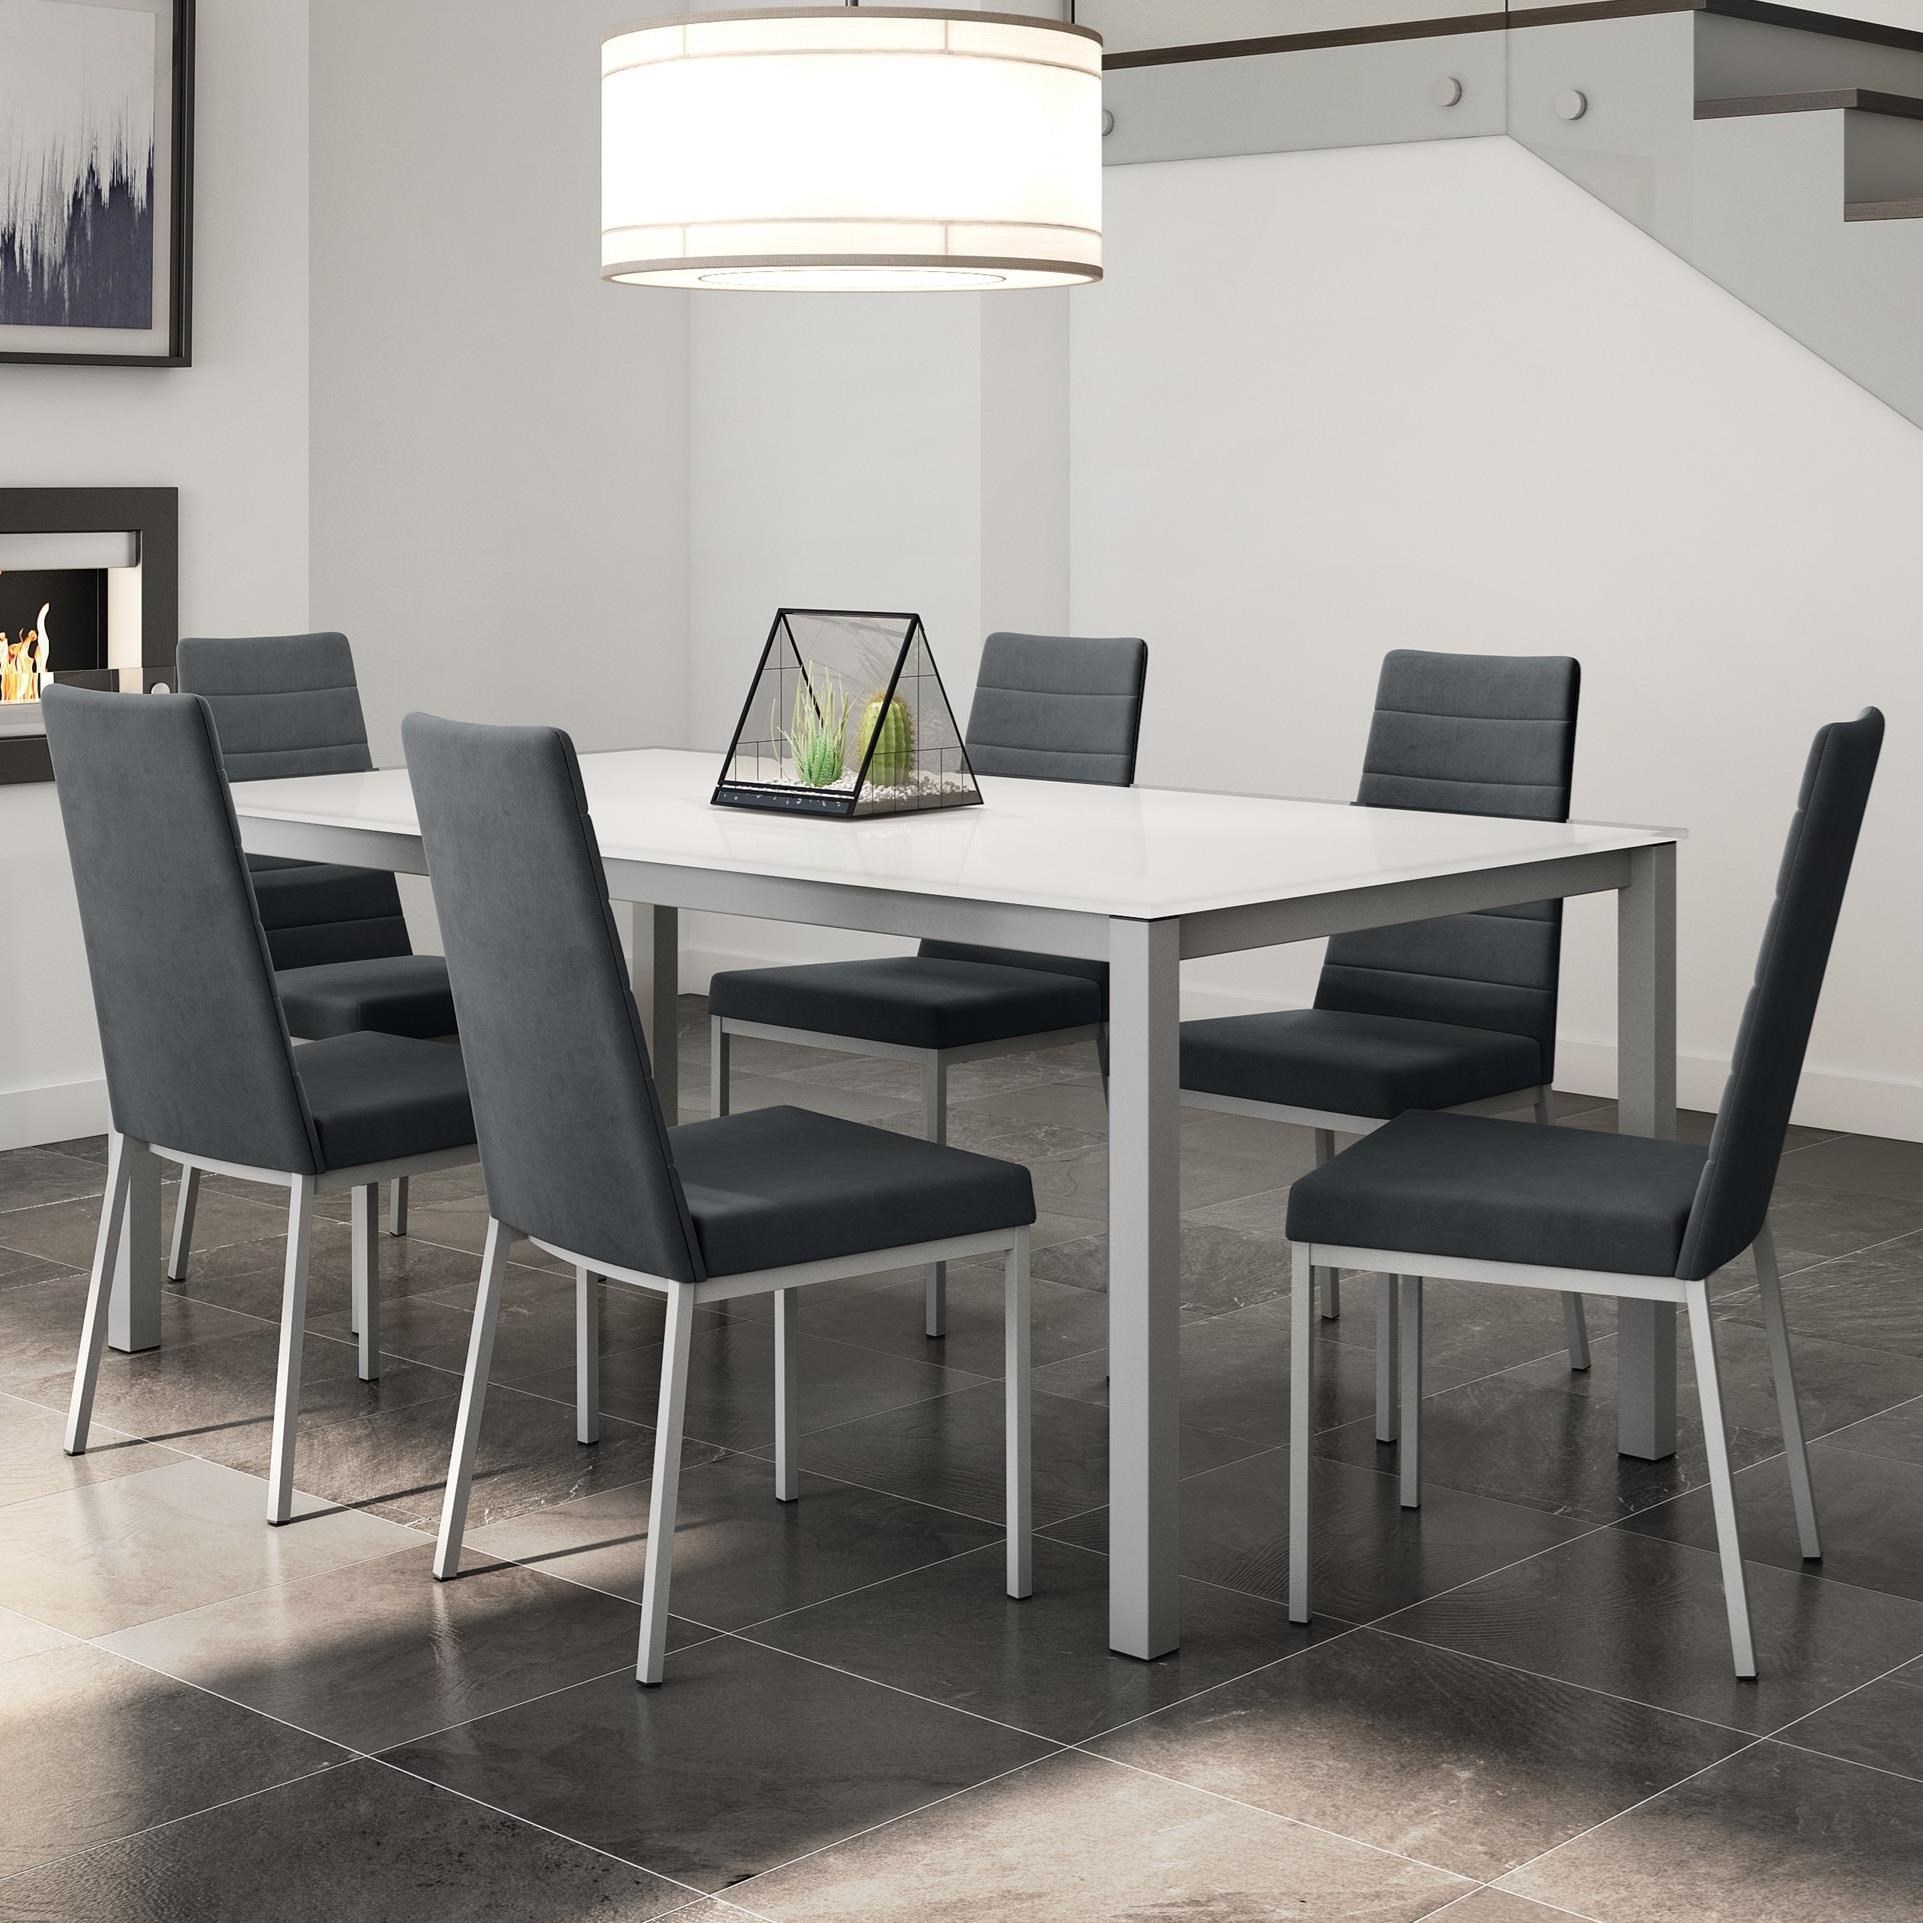 Urban 7-Piece Bennington Table Set by Amisco at Jordan's Home Furnishings